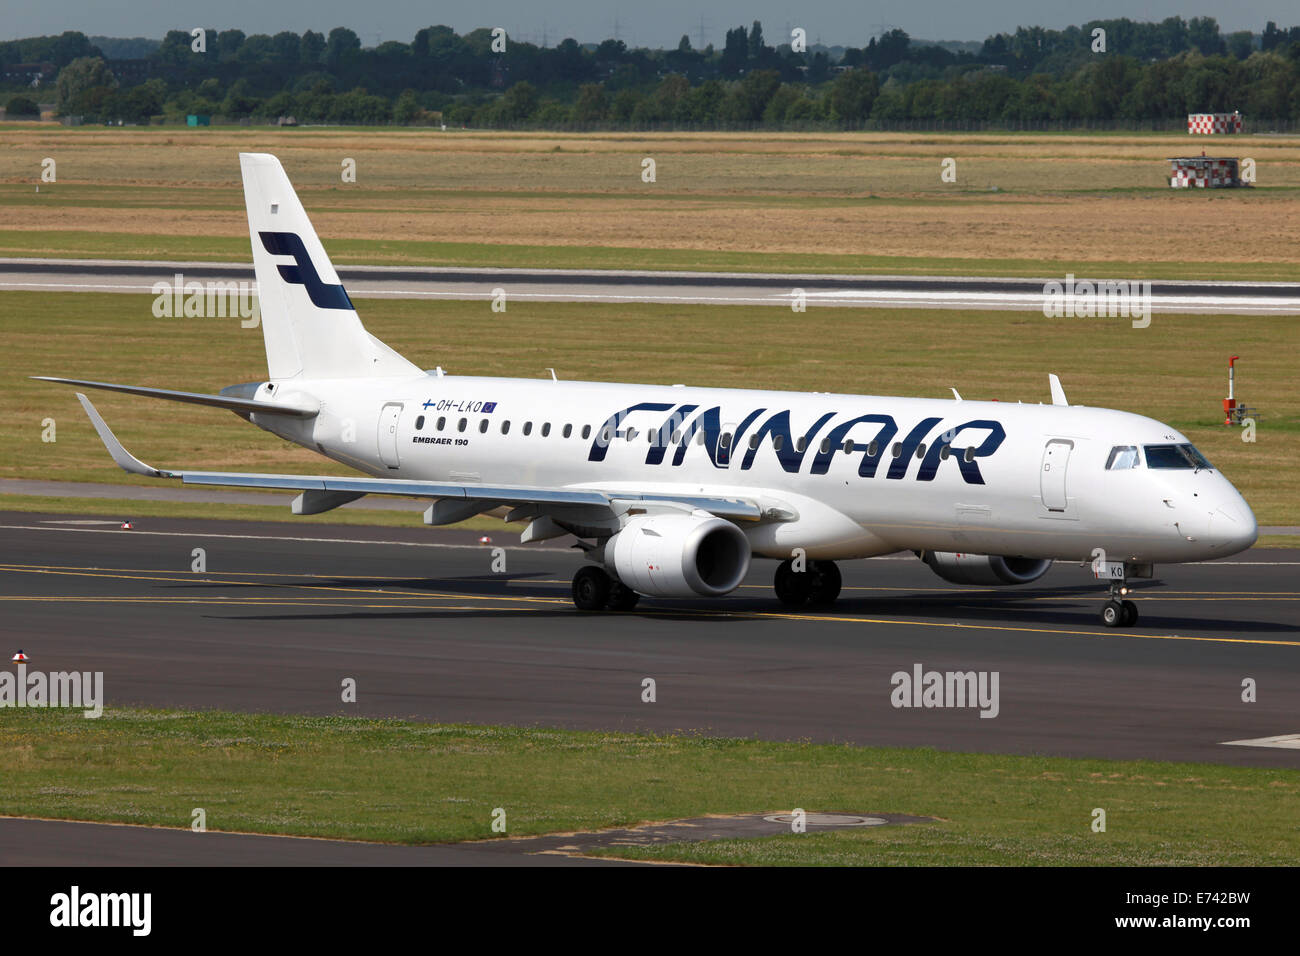 Dusseldorf, Germany - July 3, 2012: A Finnair Embraer 190 jet with the registration OH-LKO rolls to takeoff position - Stock Image